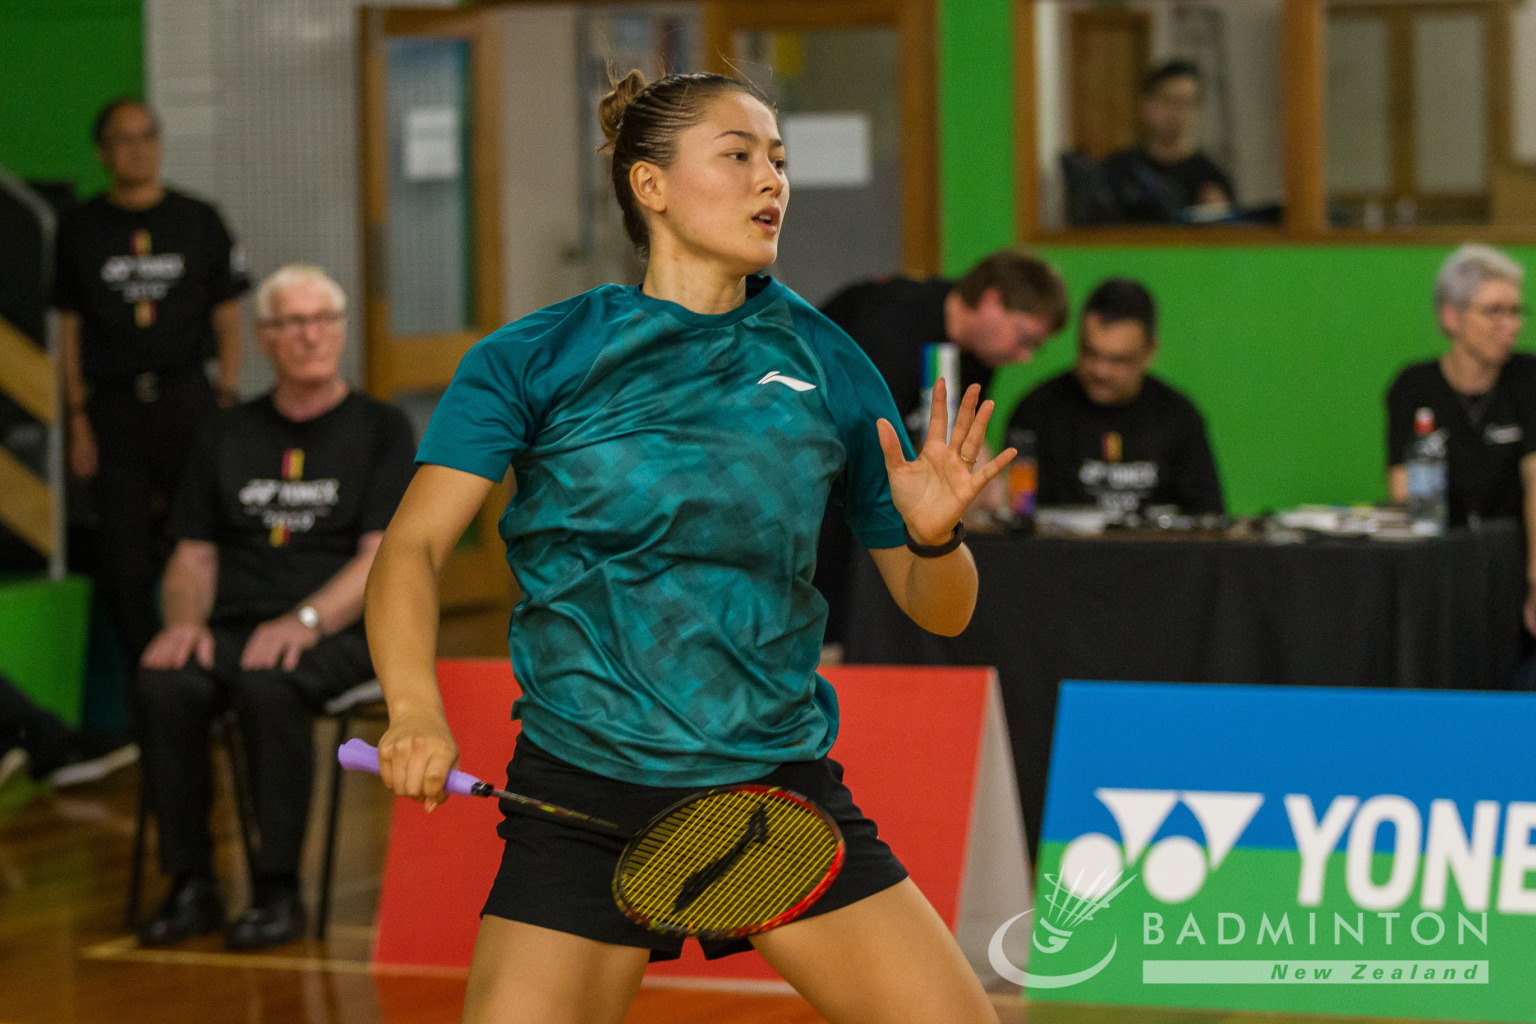 Former MSA Badminton student Gronya Somerville has won the Women's doubles at the Canadian Open